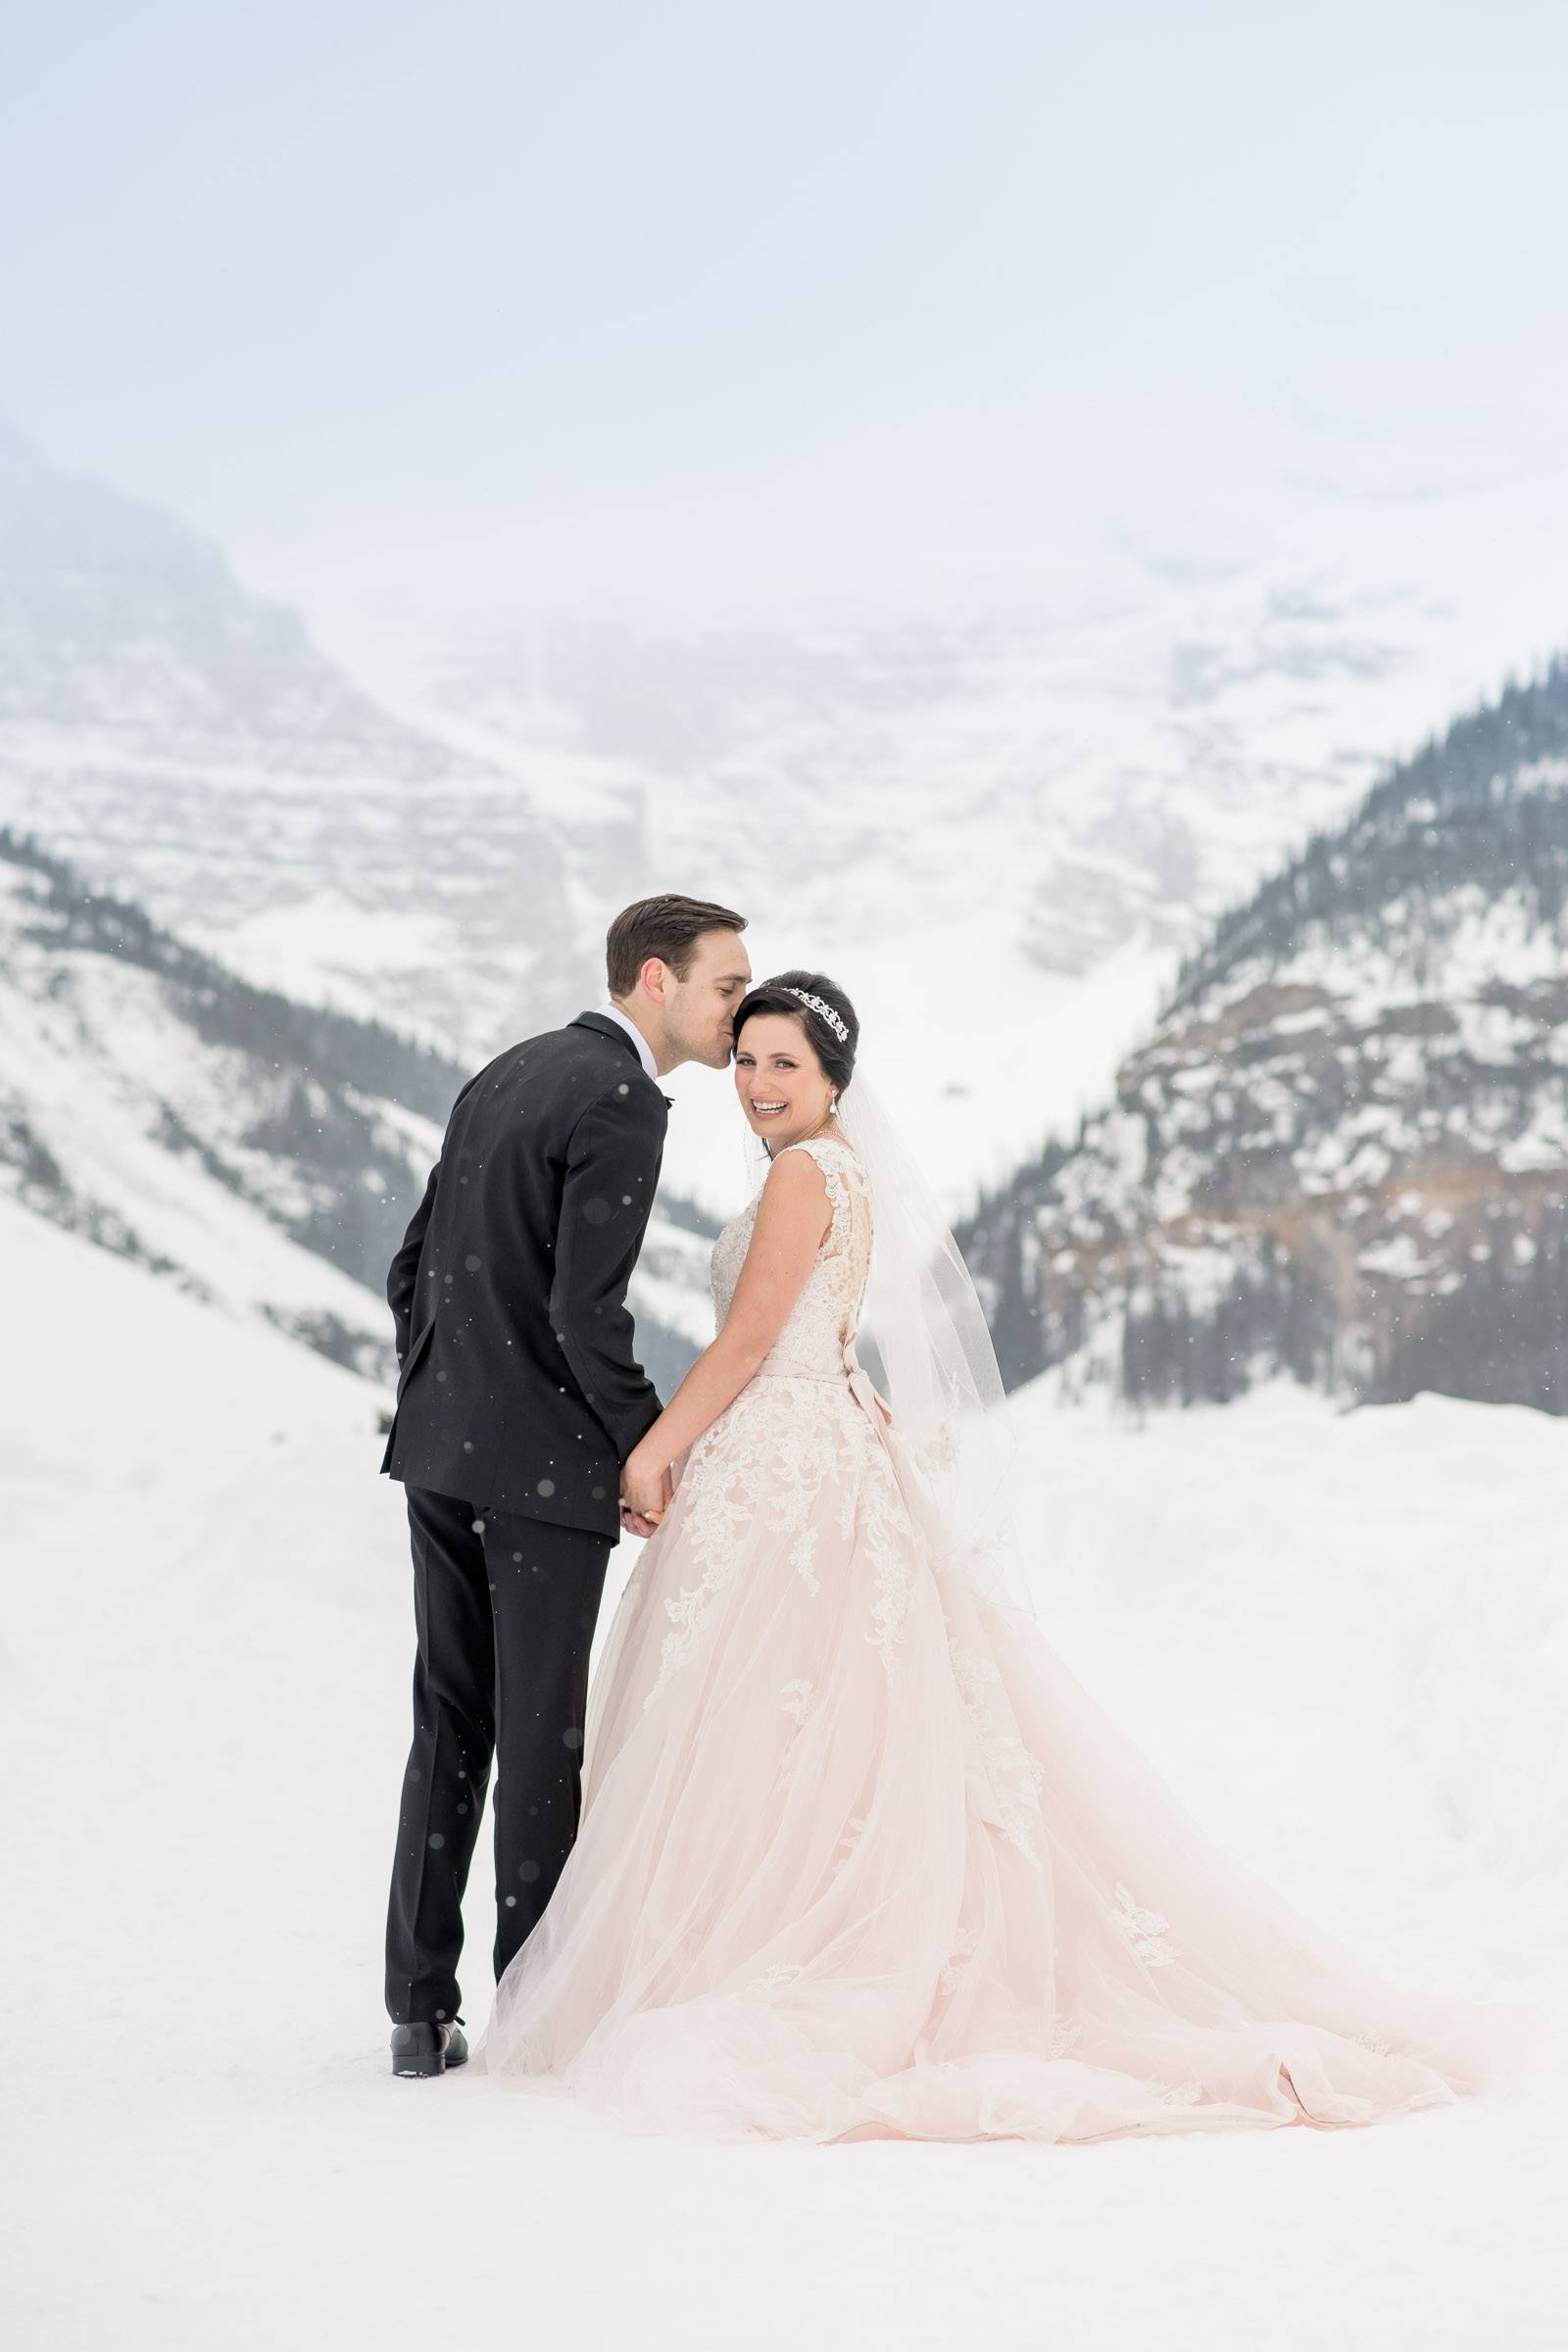 Frozen Lake Or Stay Warm And Have A Private Ceremony In Their Intimate Lefroy Room Summer Offers Time Spent Out On Canoe Hiking To Two Teahouses